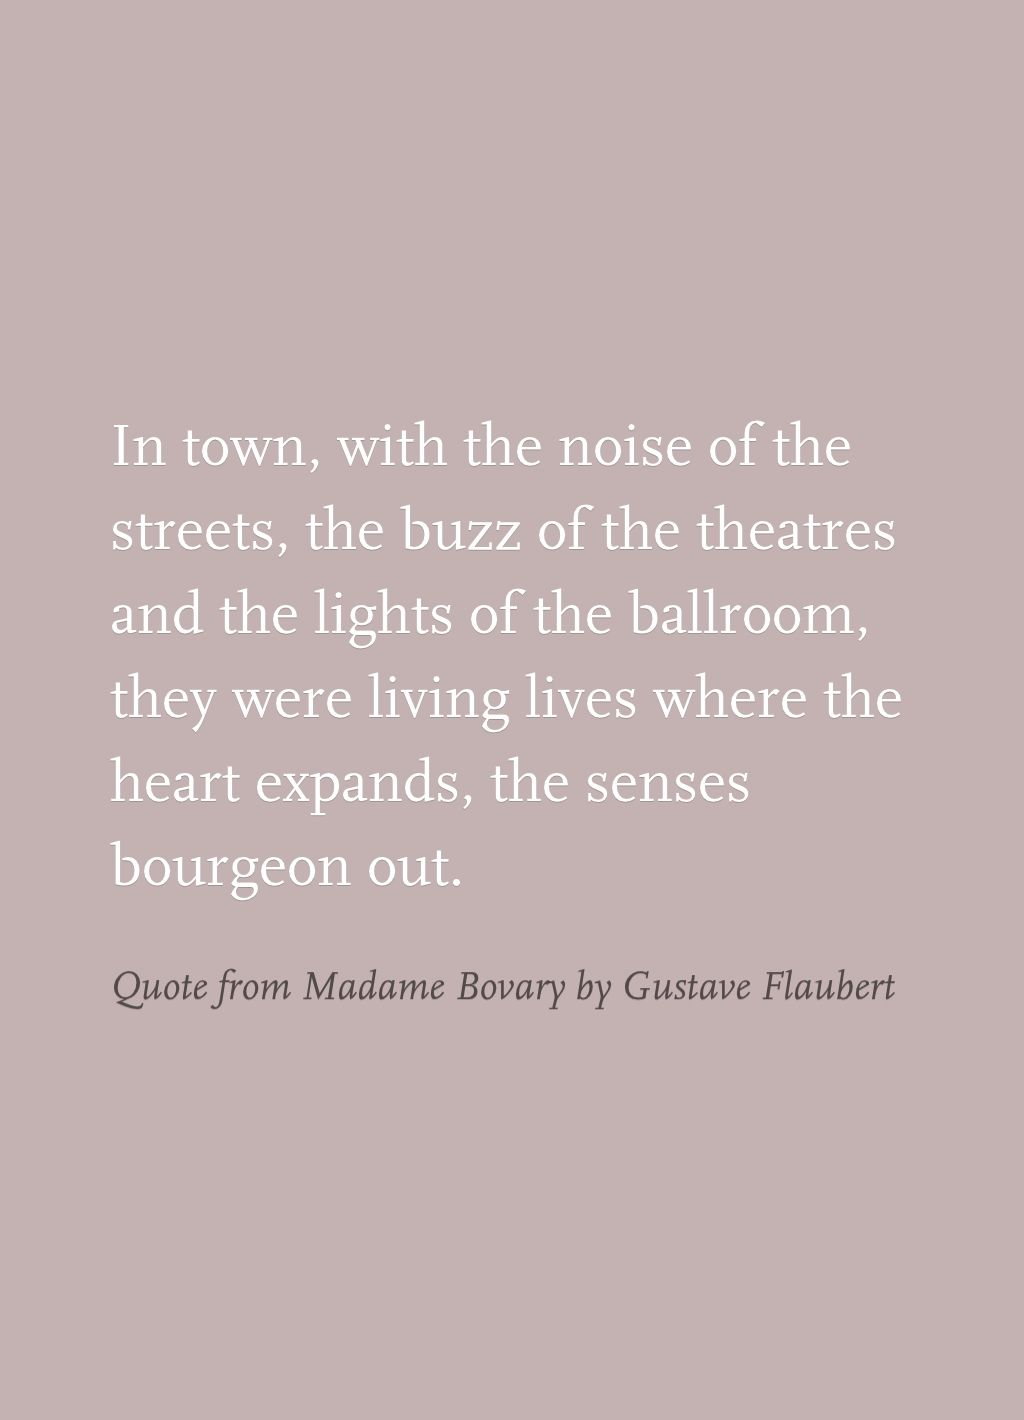 quote from madame bovary by gustave flaubert the highlight quote from madame bovary by gustave flaubert